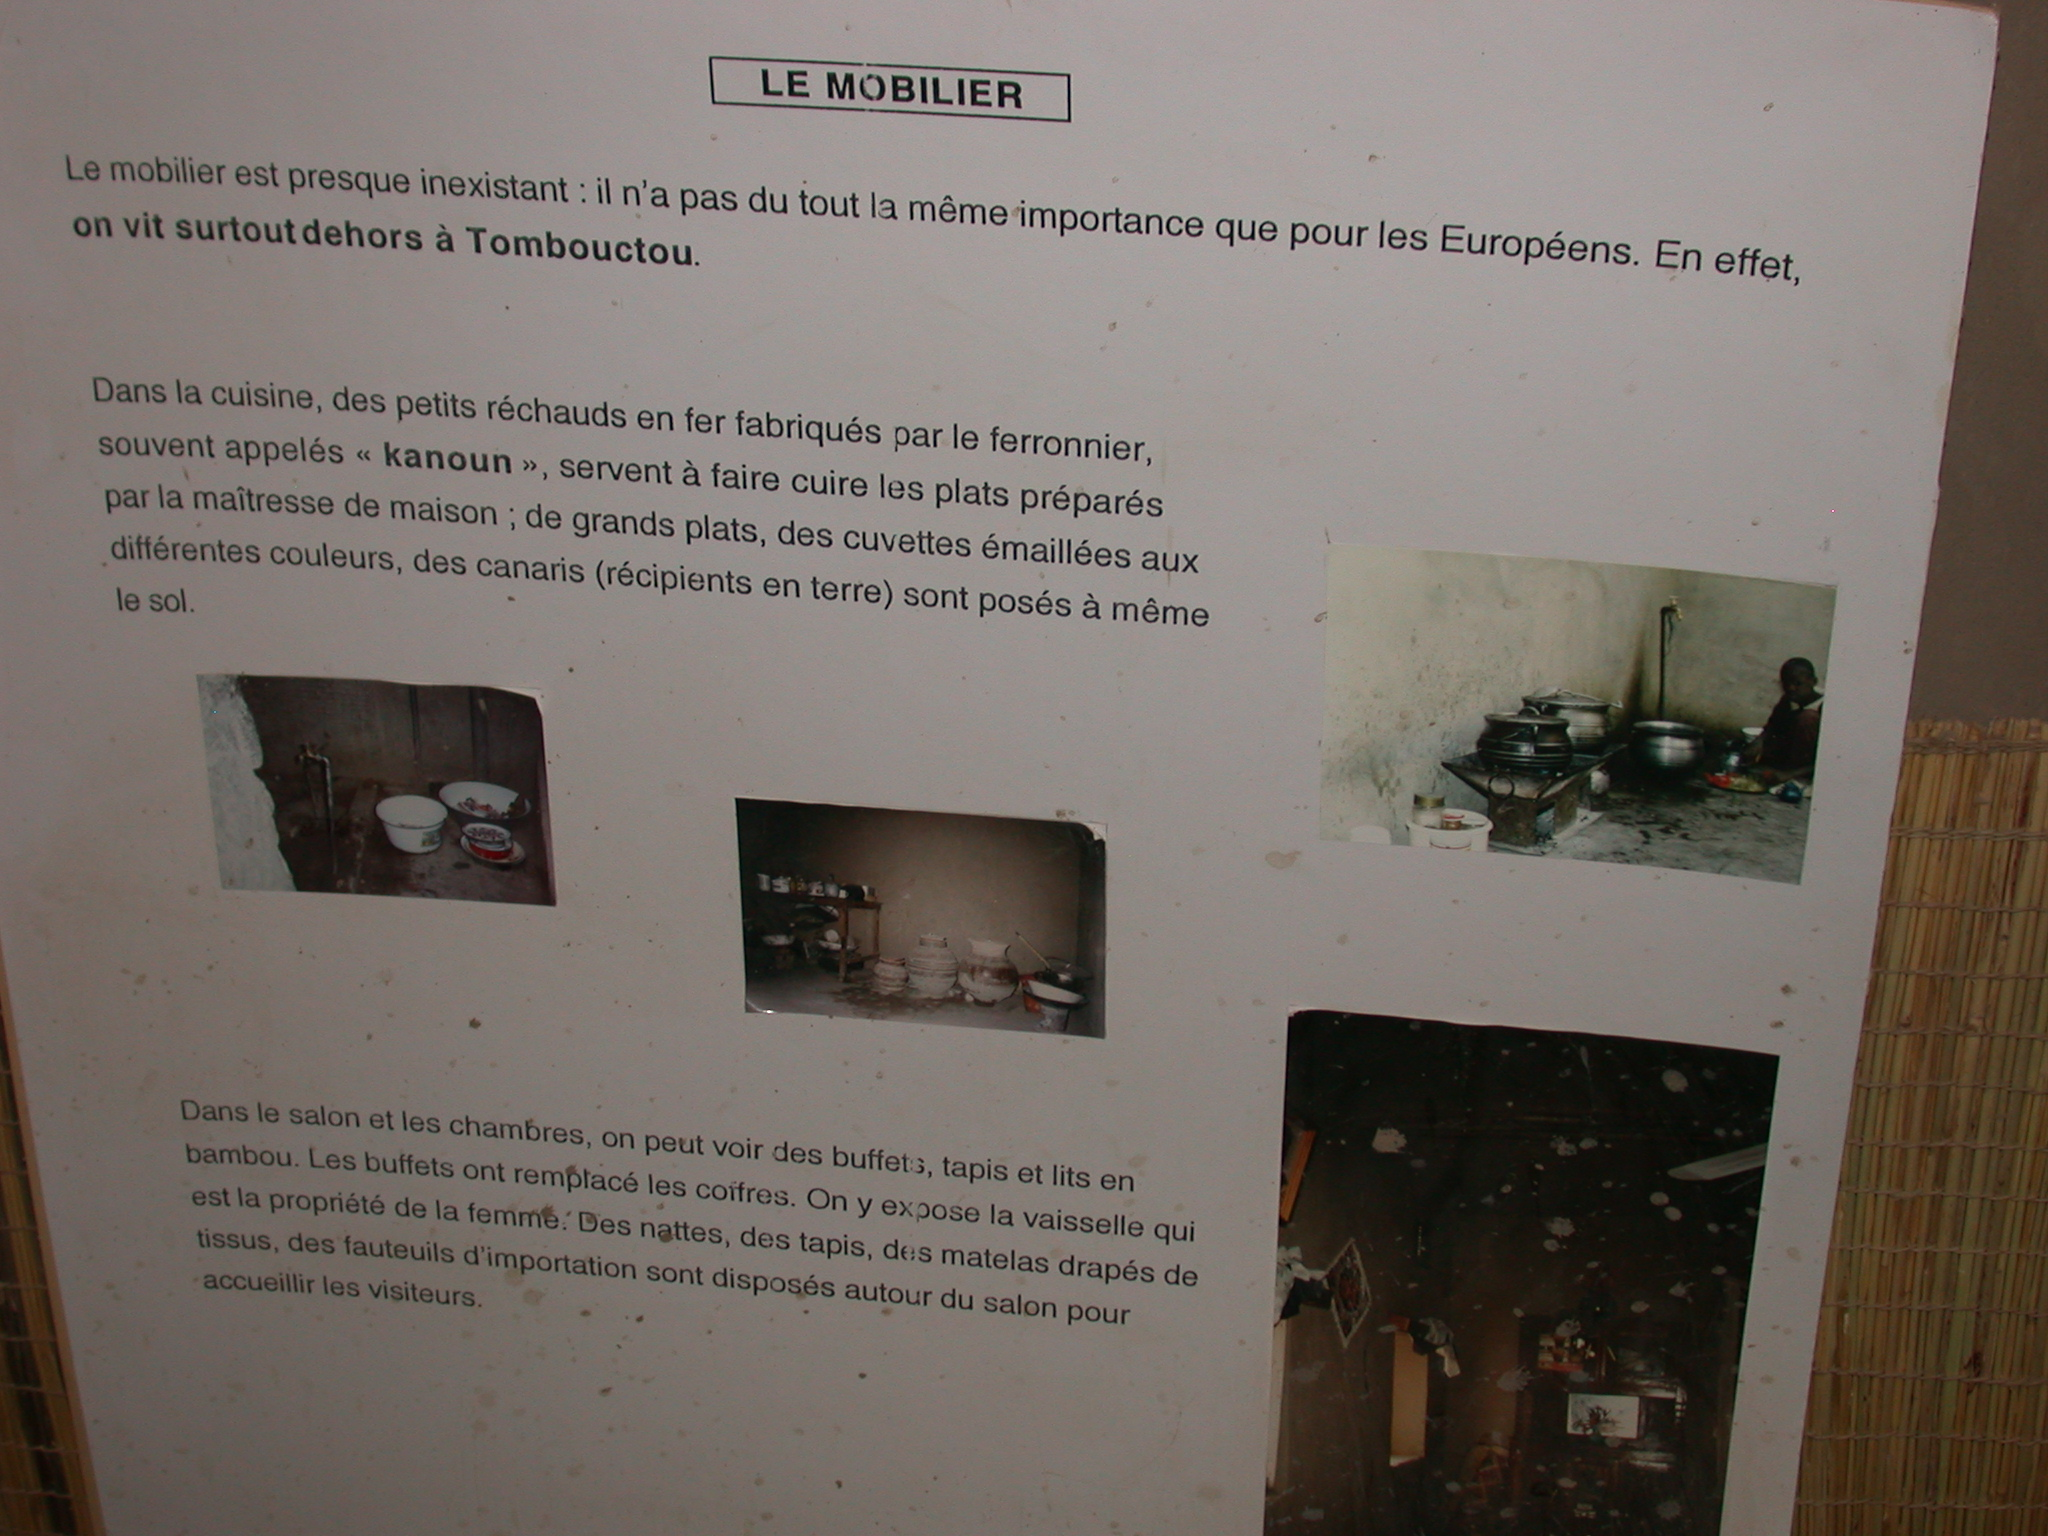 Furniture Description, Part I, Timbuktu Ethnological Museum, Timbuktu, Mali